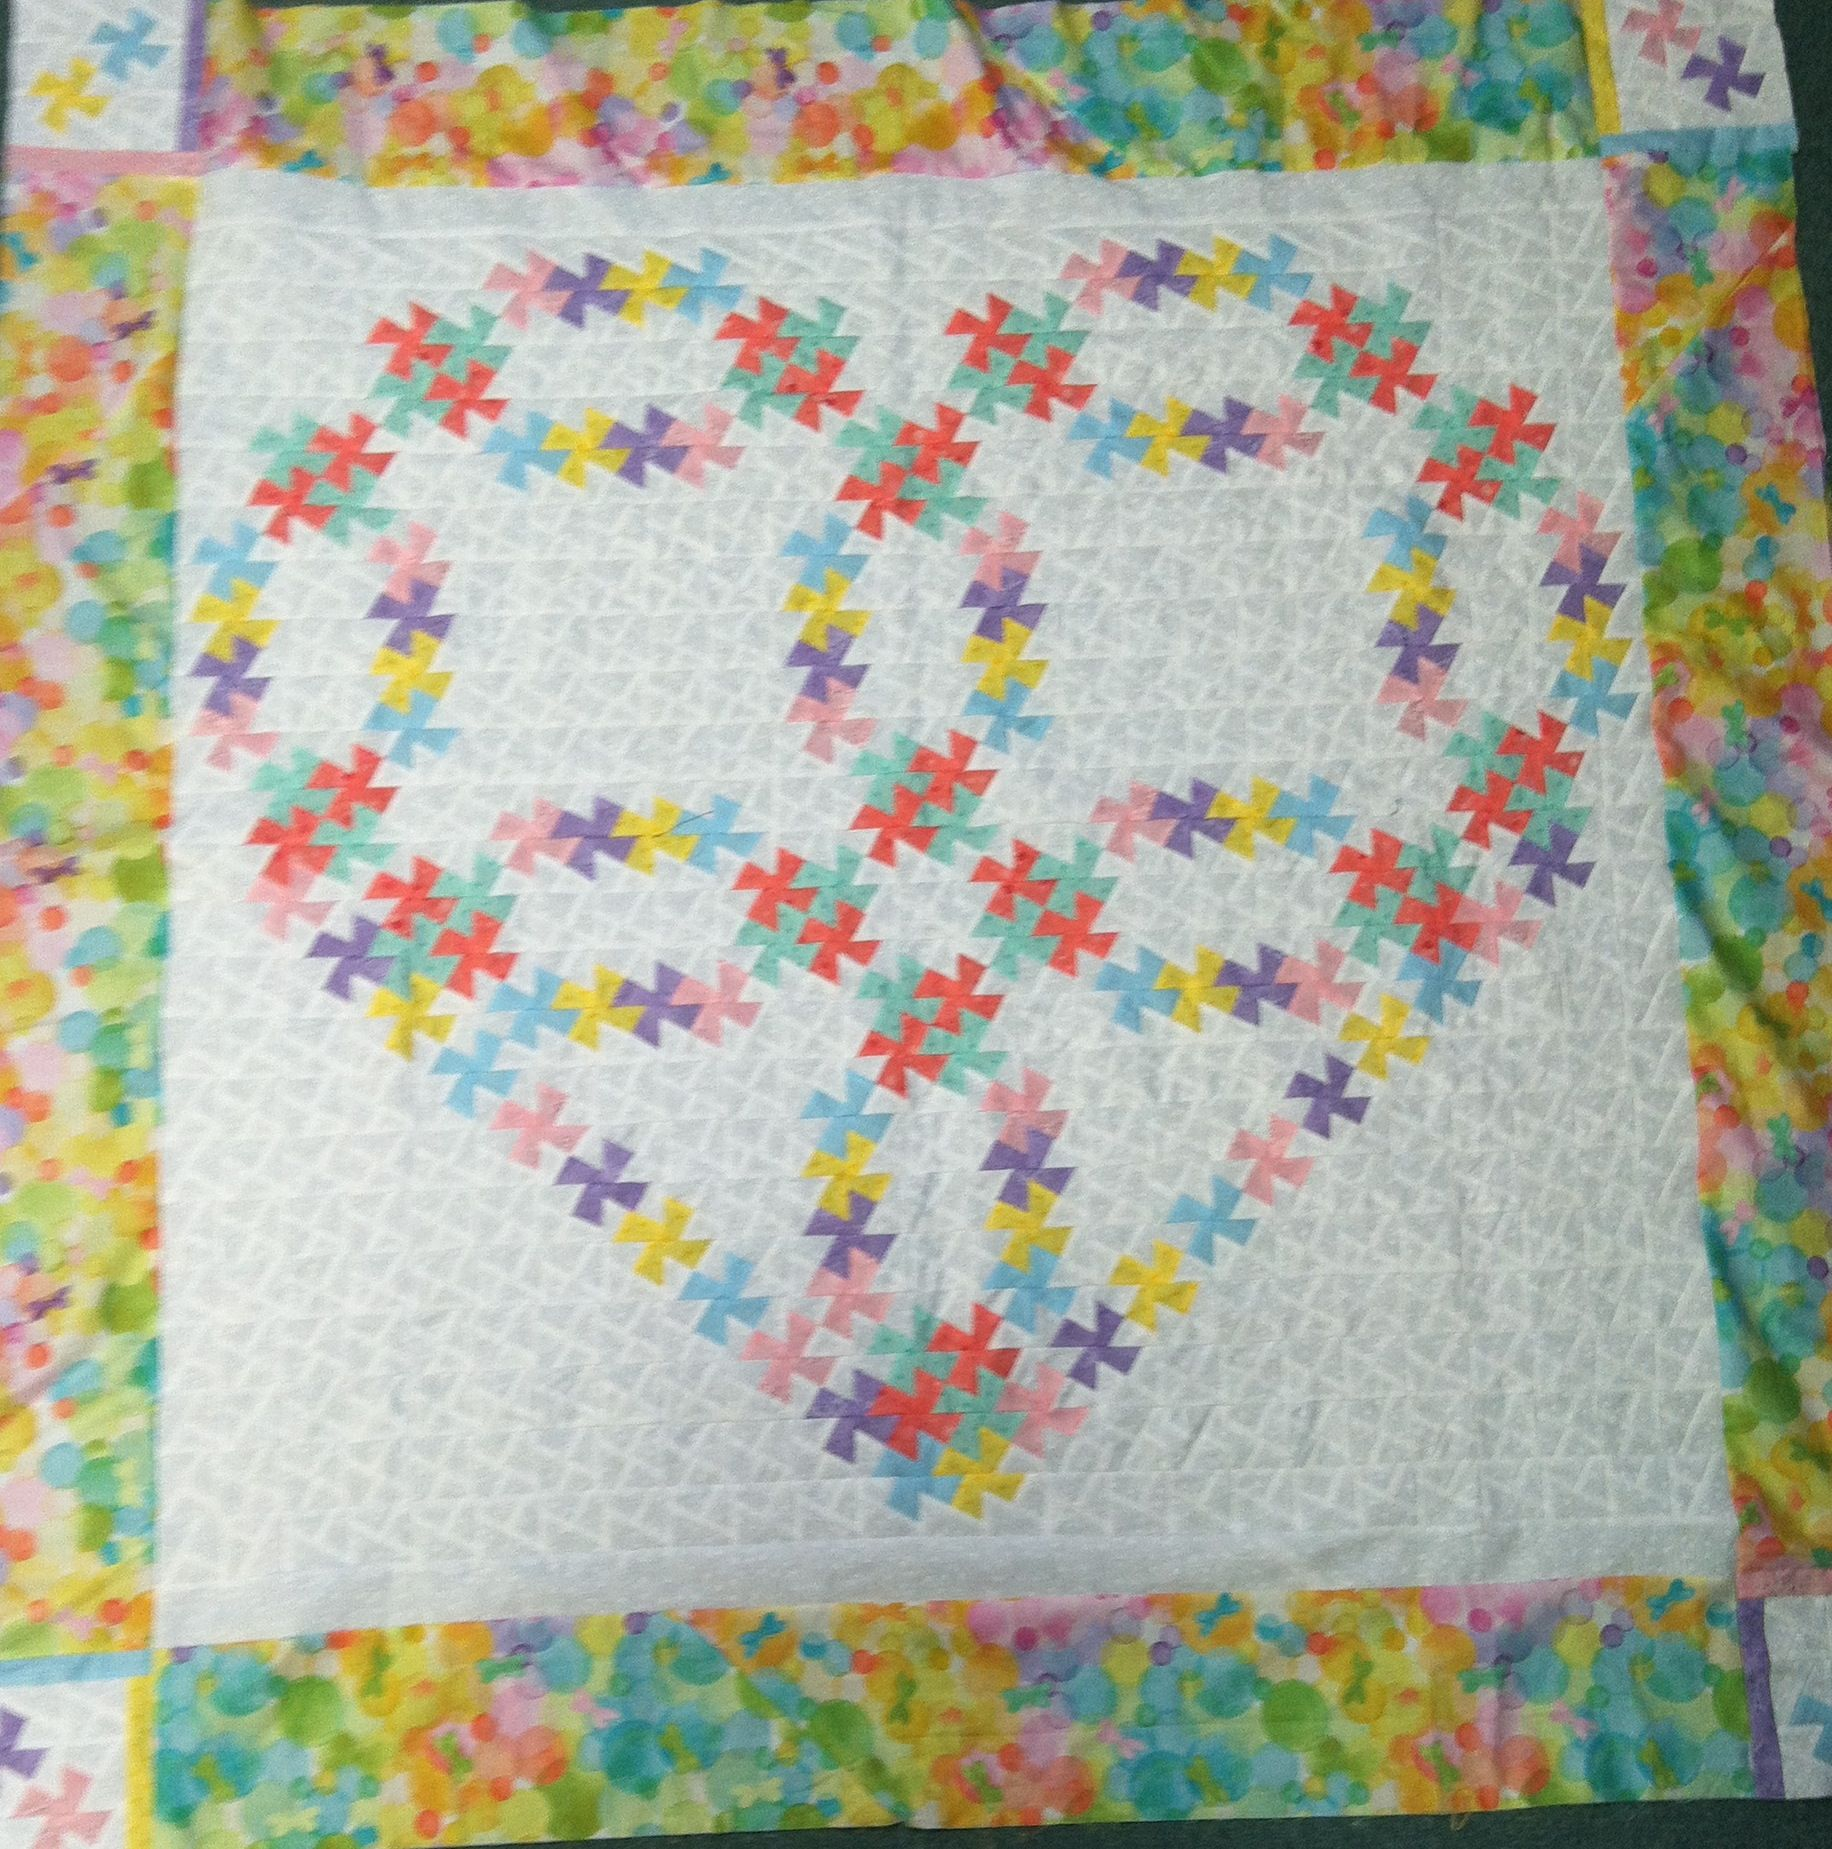 Twisted heart wedding ring quilt in the book twister chasers! Class ...